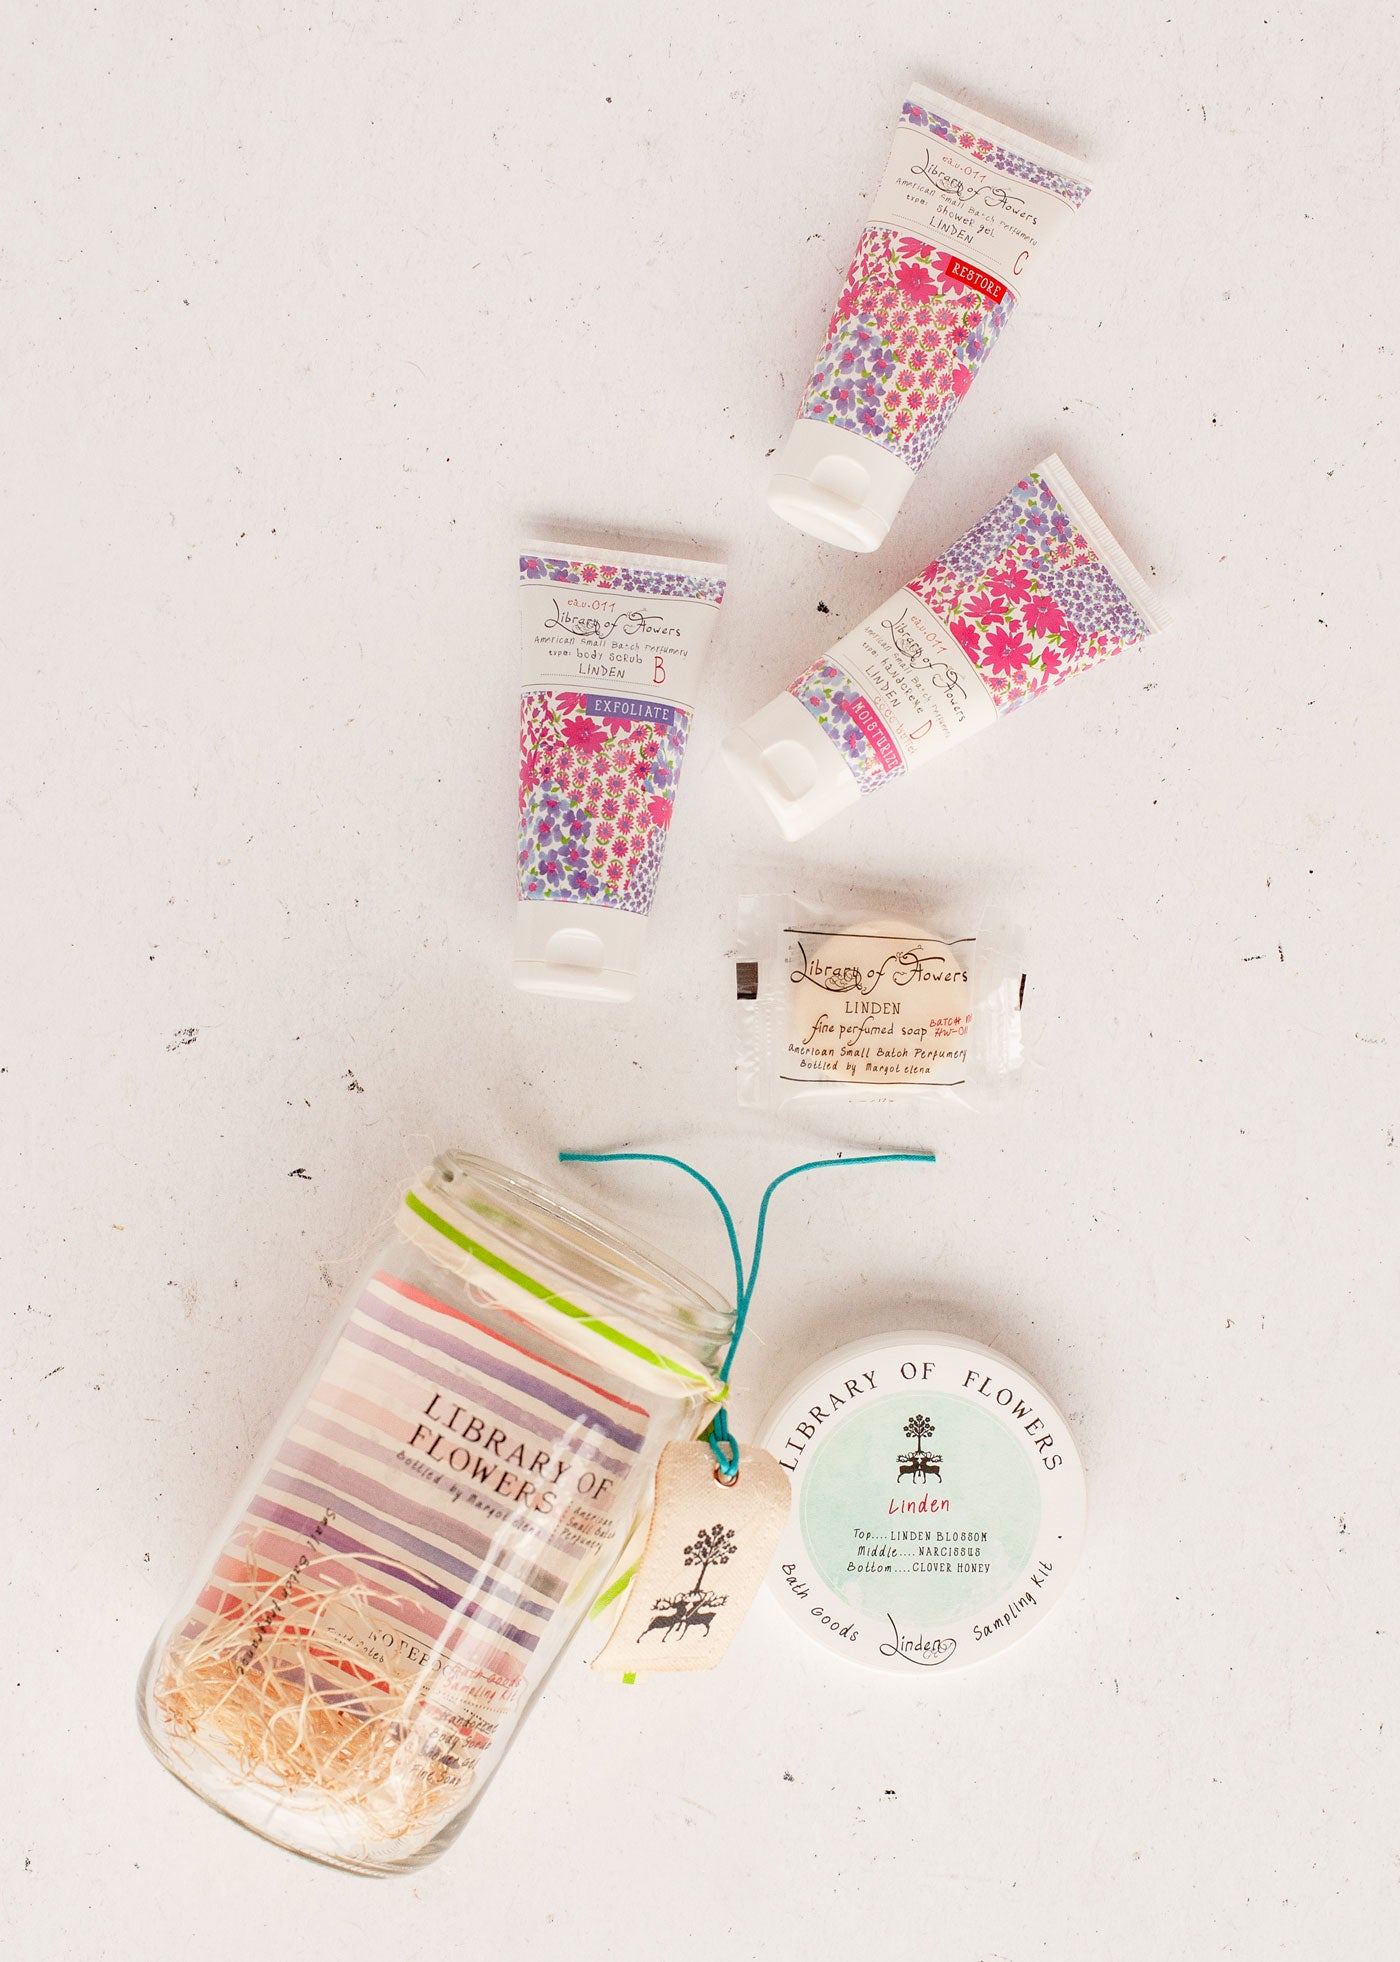 Linden Bath Goods Sampling Kit